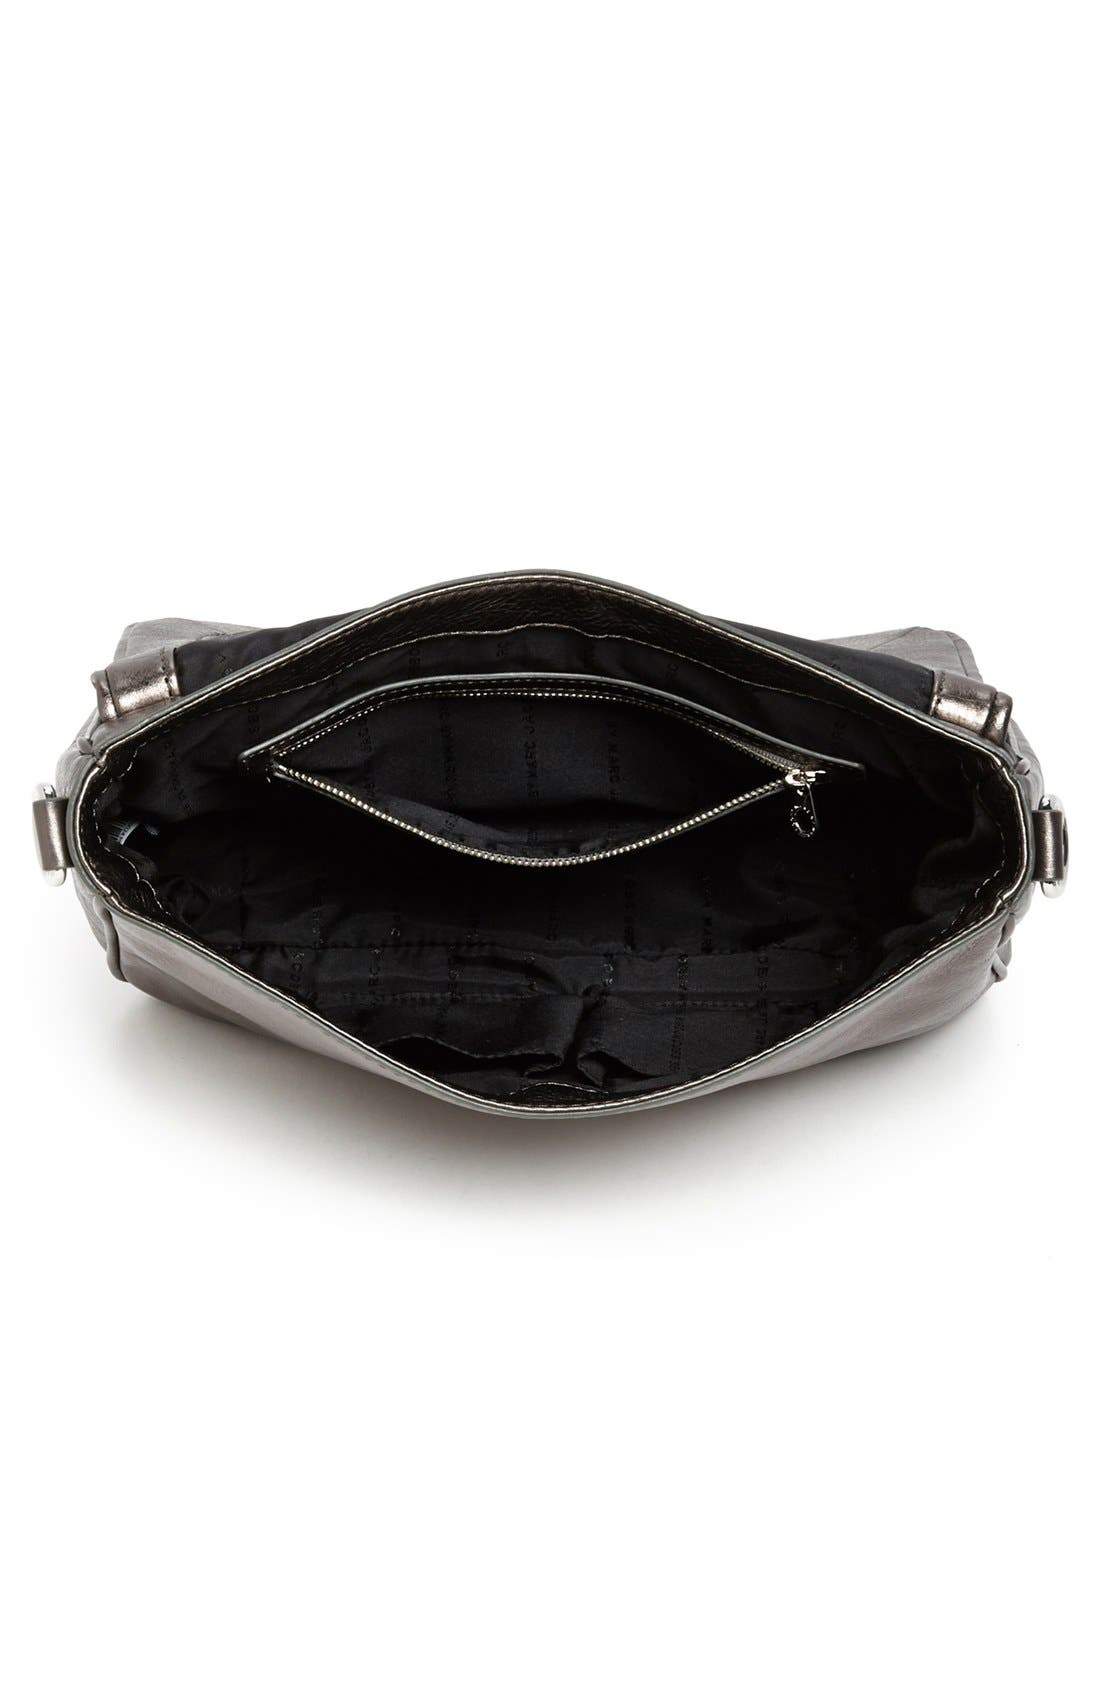 Alternate Image 3  - MARC BY MARC JACOBS 'Too Hot to Handle' Metallic Leather Crossbody Bag